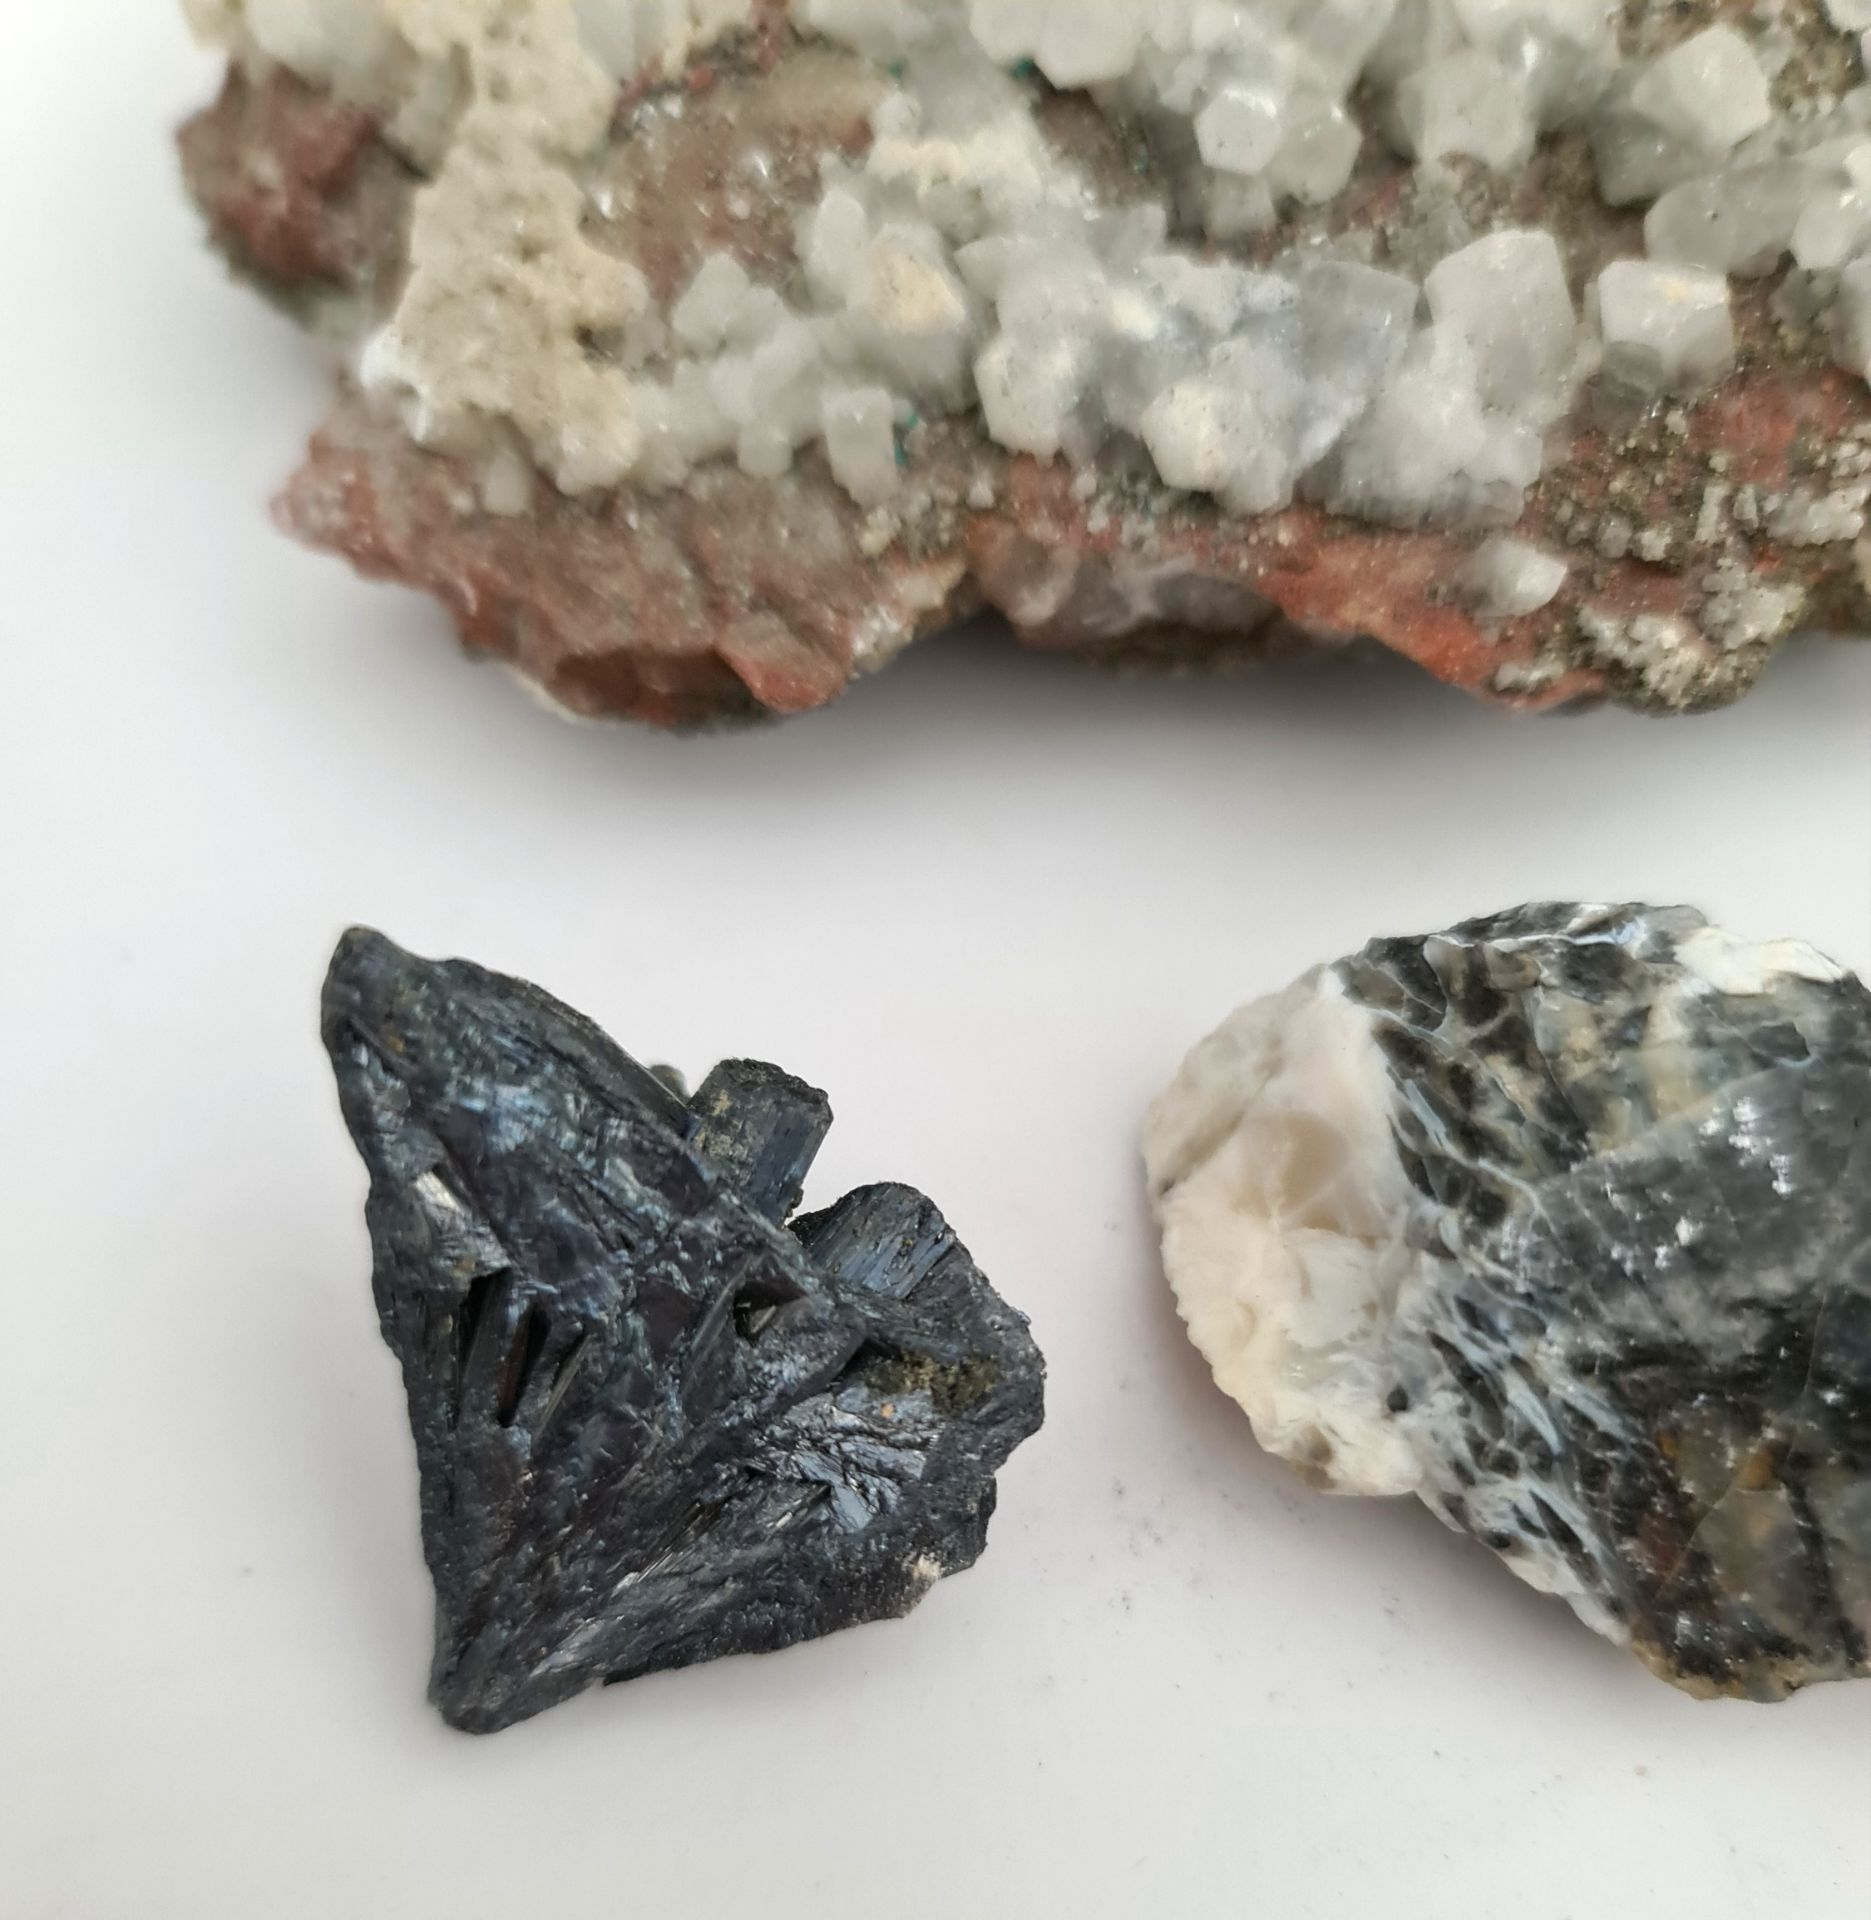 Collectable 5 x Geological Rock Samples - Image 2 of 2